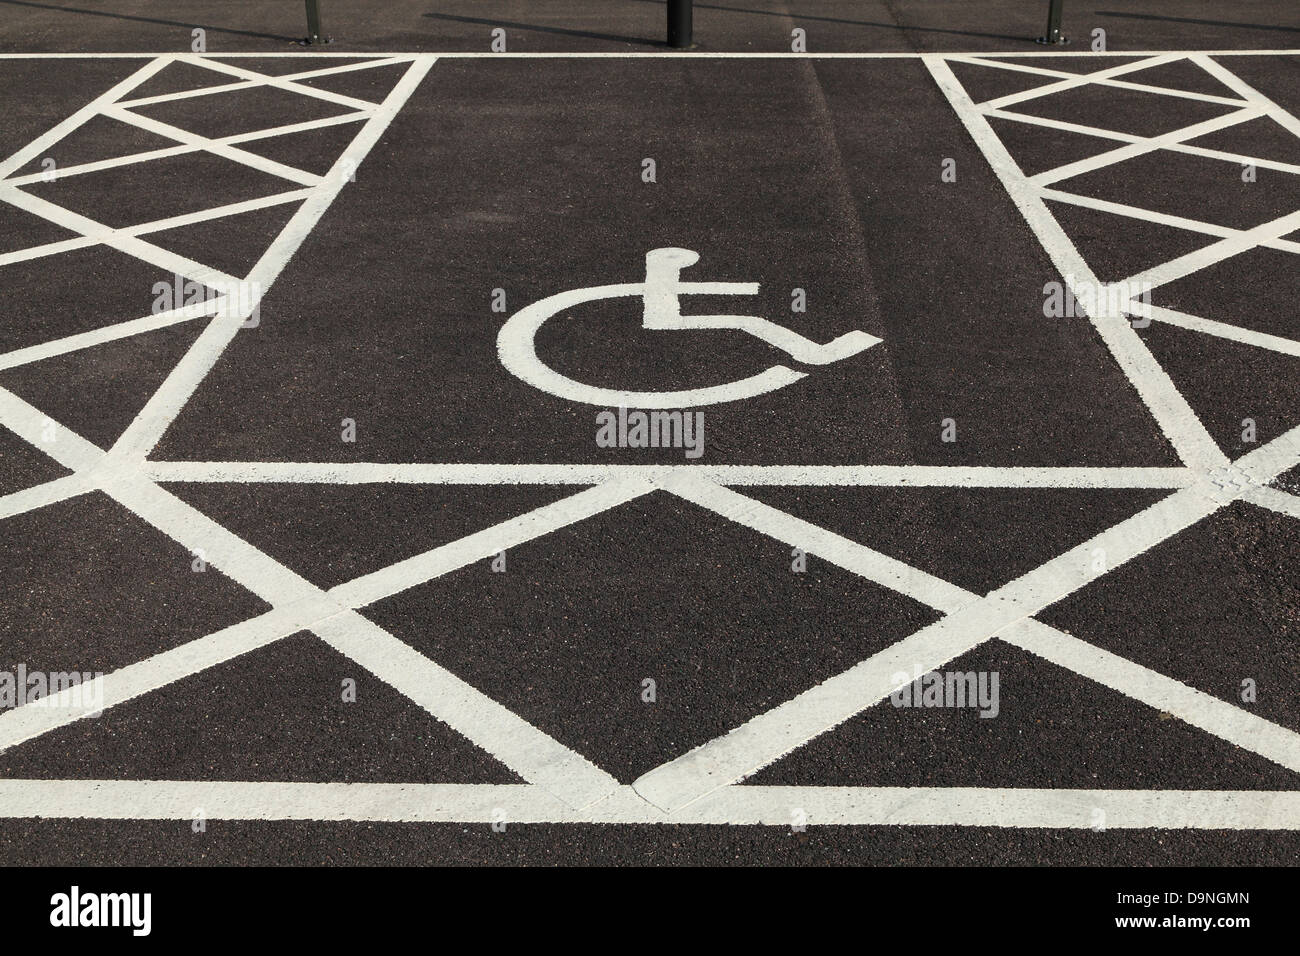 Car Parking Bay for Disabled driver or passenger, logo - Stock Image